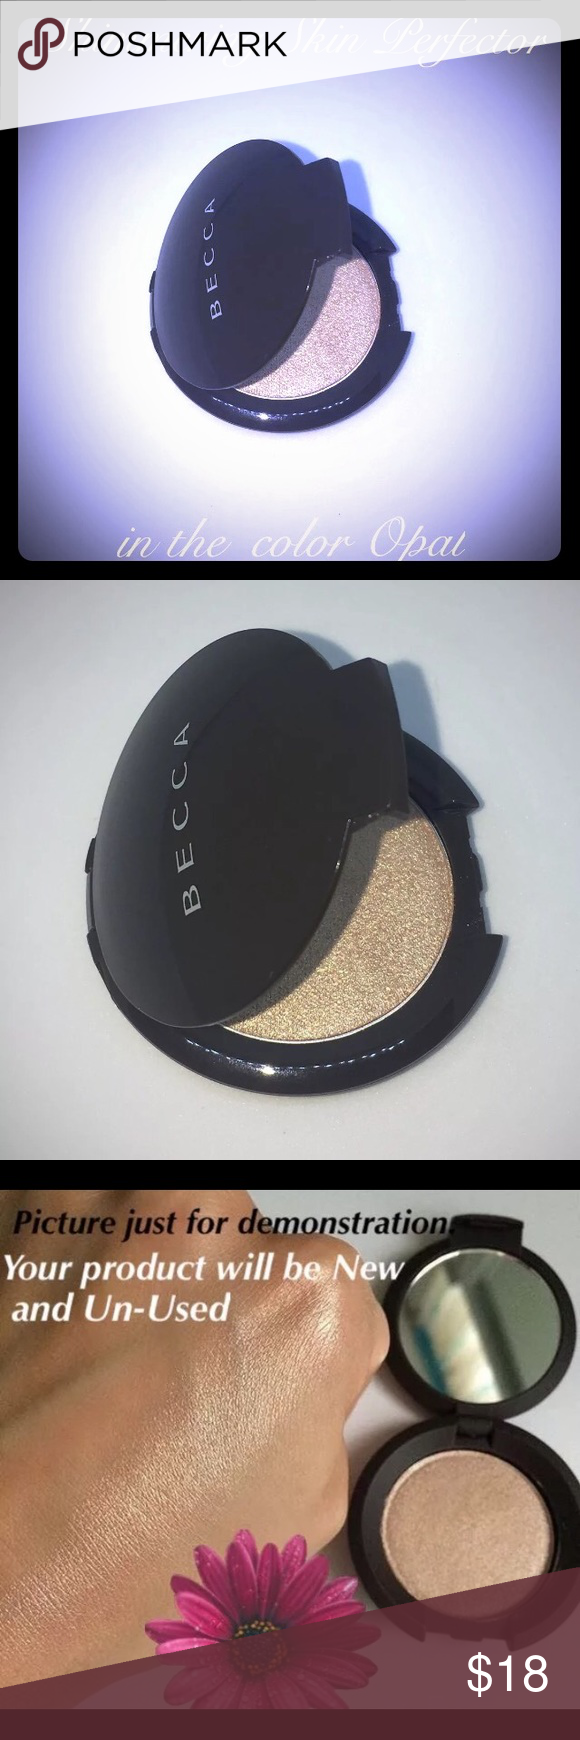 Becca Opal Pressed Shimmering Skin Perfector Mini BECCA✨Shimmering Skin Perfector✨Pressed Mini Highlighter in the Shade: OPAL (Travel Size) 2.4g / .08oz  NEW without box (Never Used, Never Swatched or Touched)  % AUTHENTIC⭐️ (from Sephora)  What it is:   A bestselling, creamy, highlighter powder to light up your best features with a high-shine finish.  What it does:   Like a spotlight for your skin, Shimmering Skin Perfector® Pressed Highlighter lights up your favorite features with…